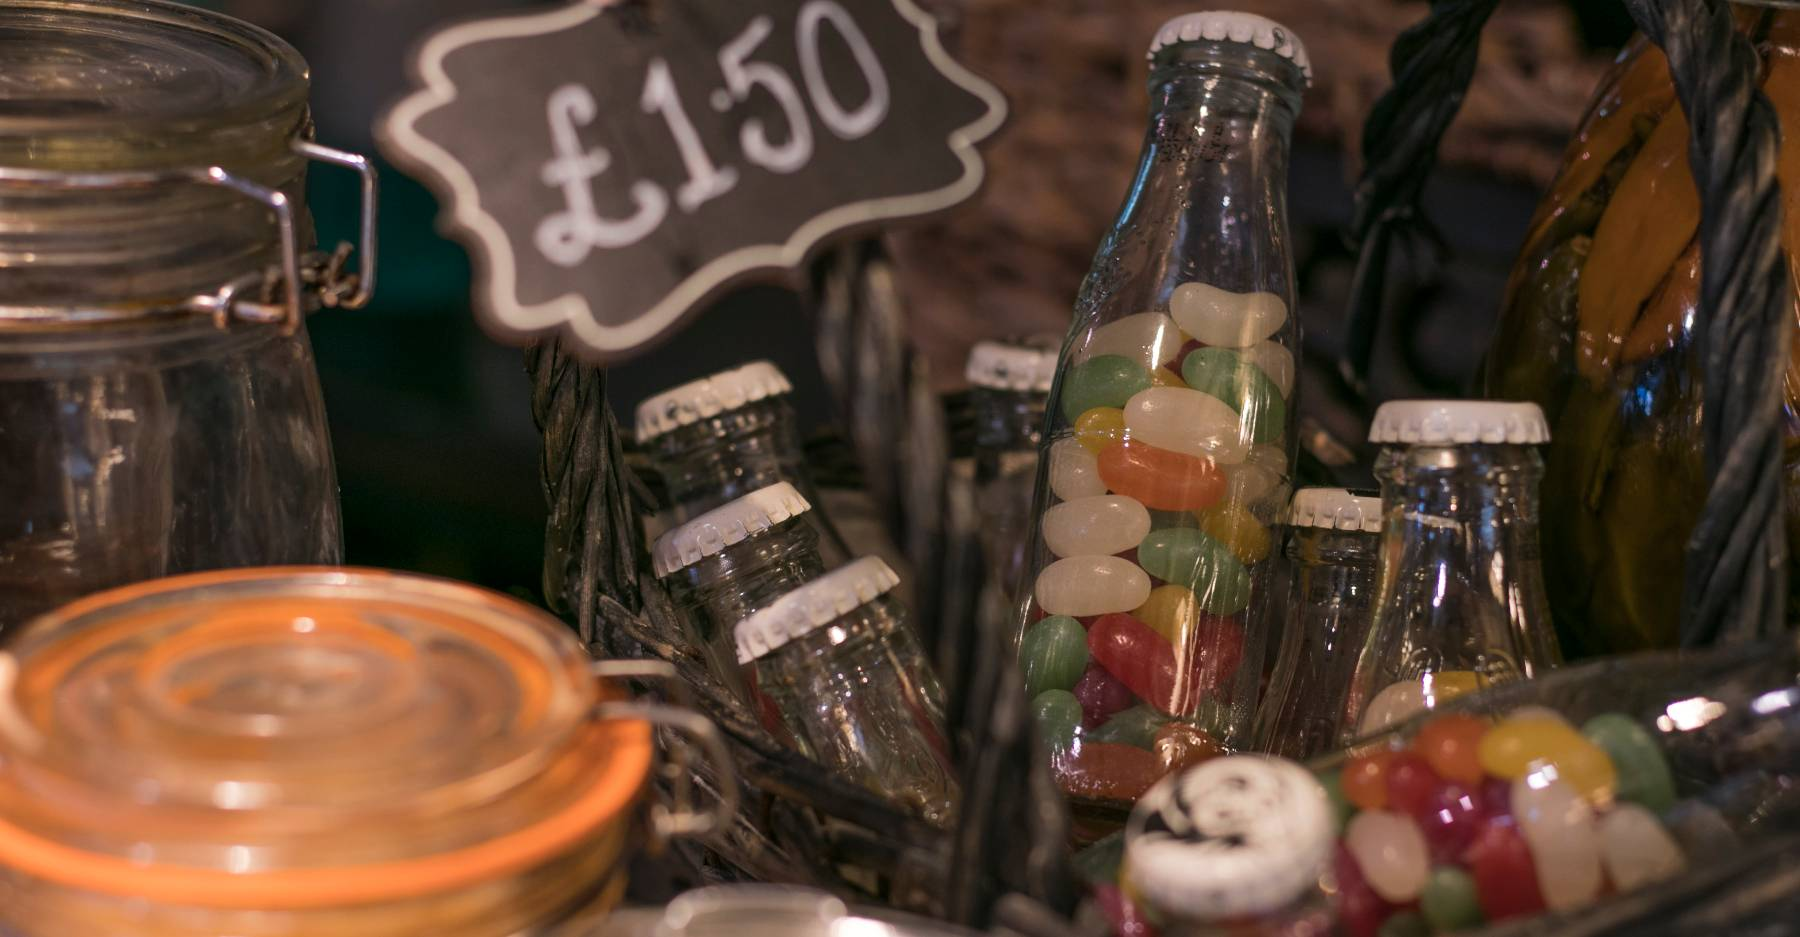 sweets in bottles